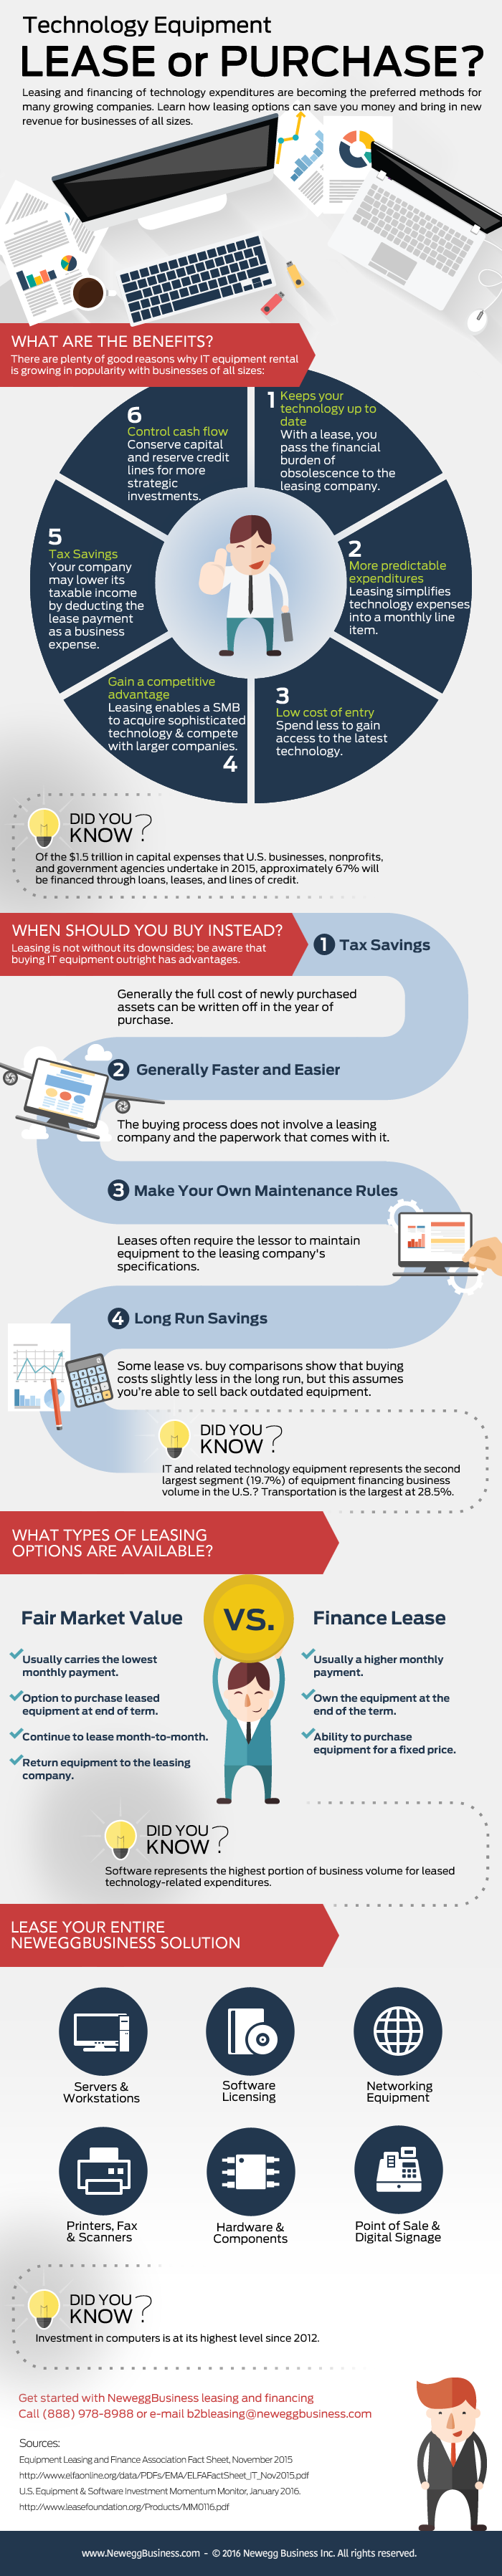 [INFOGRAPHIC] Should You Buy or Lease Tech Equipment?